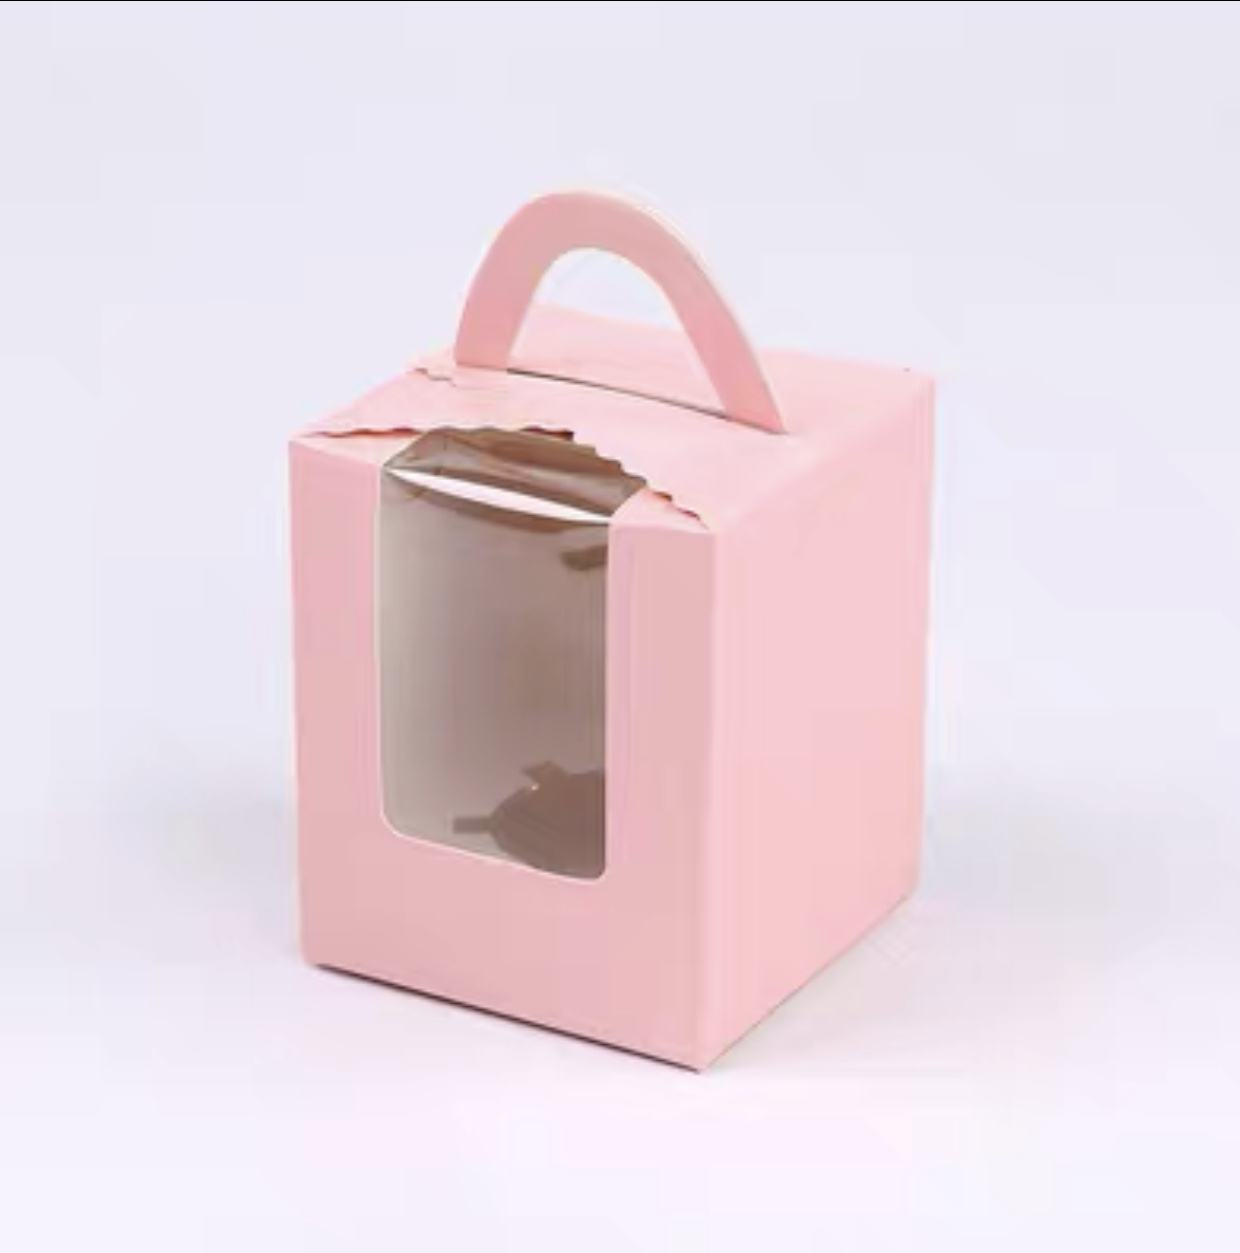 Factory price fancy white cardboard carton packaging single cupcake paper box with window